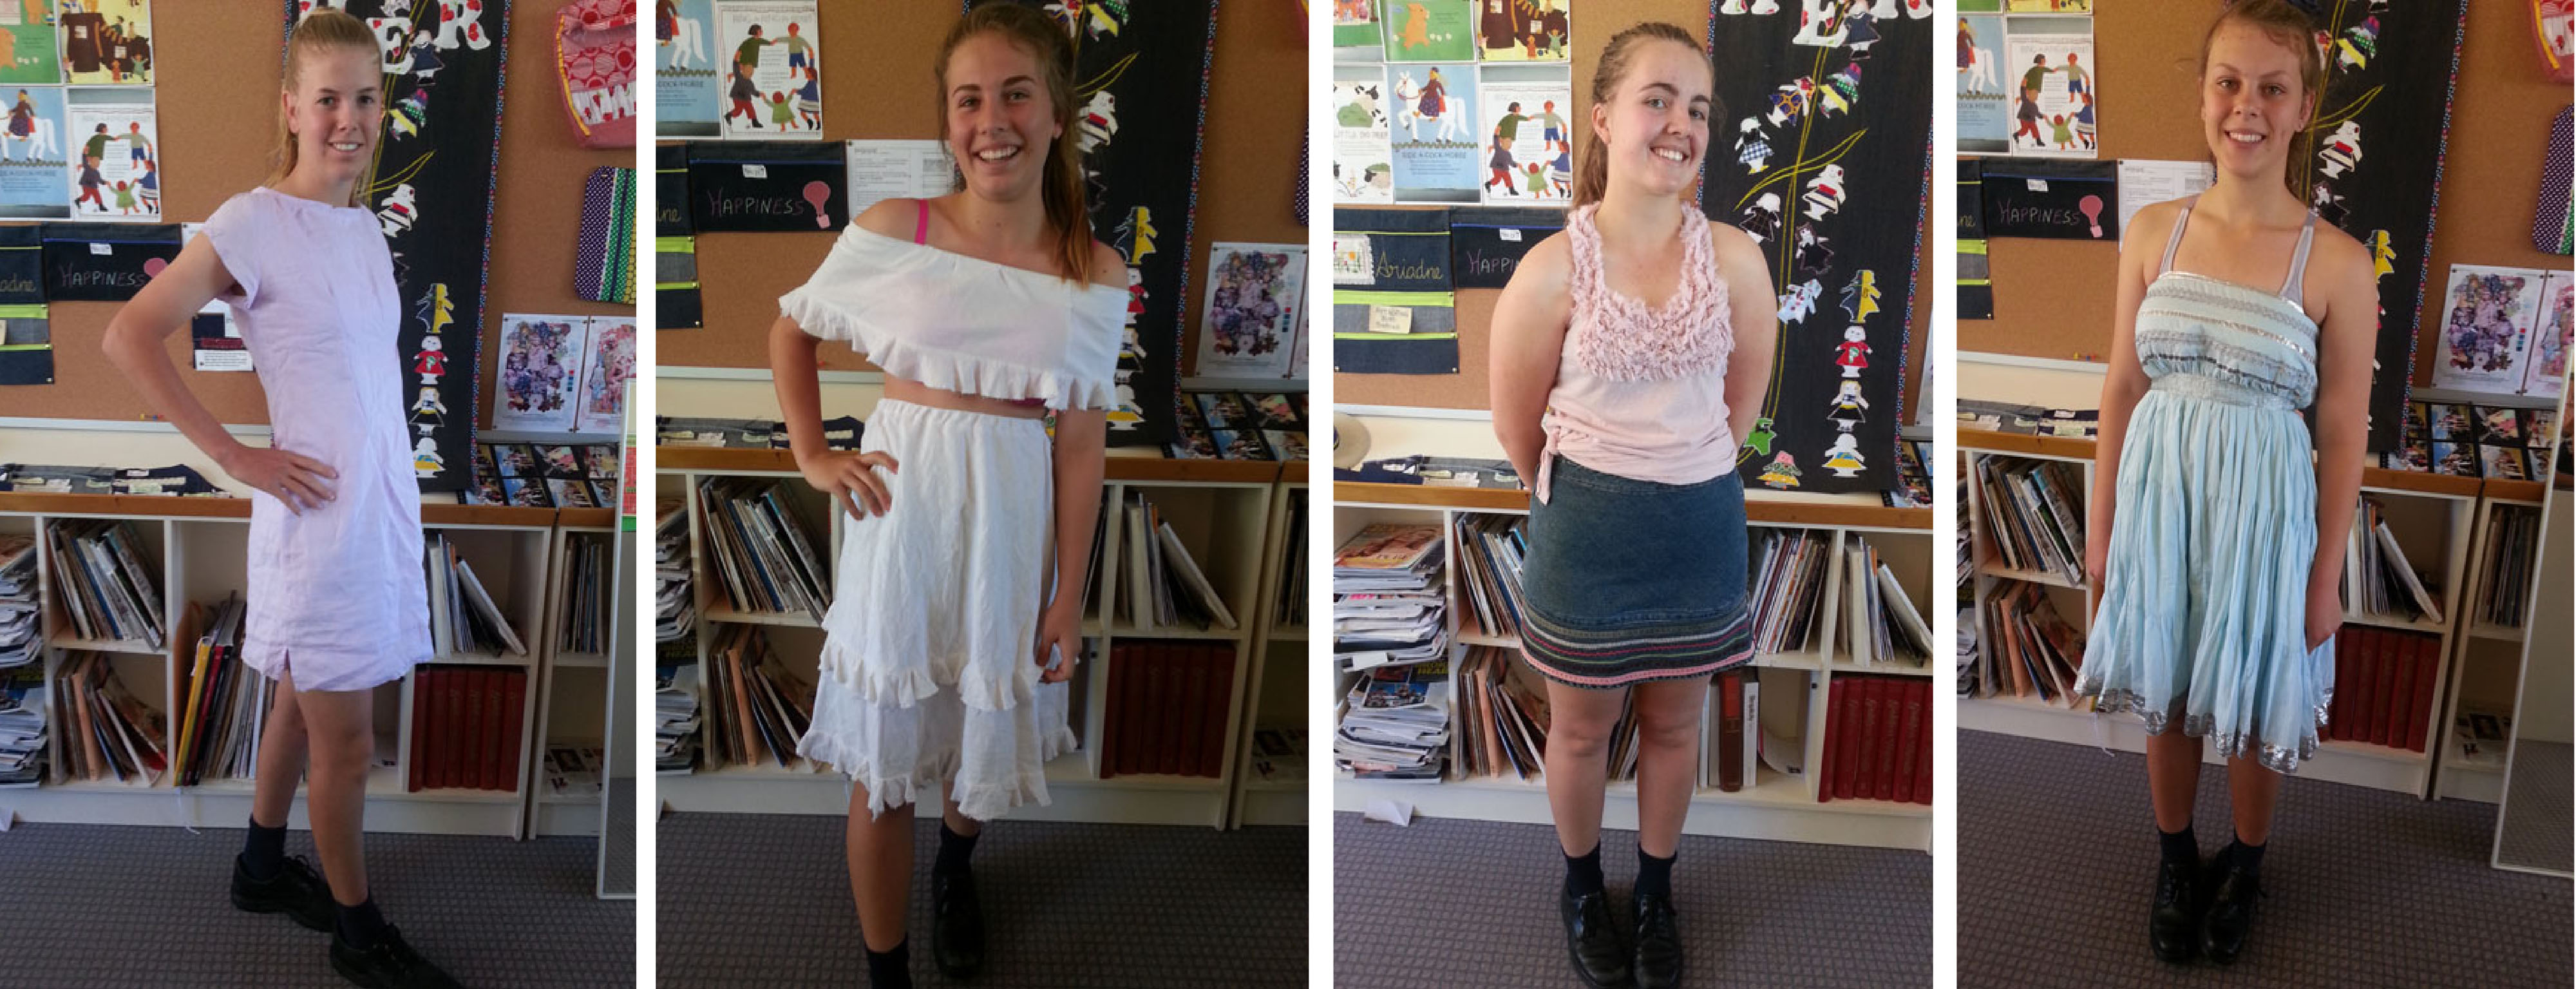 Toowoomba students upcycle